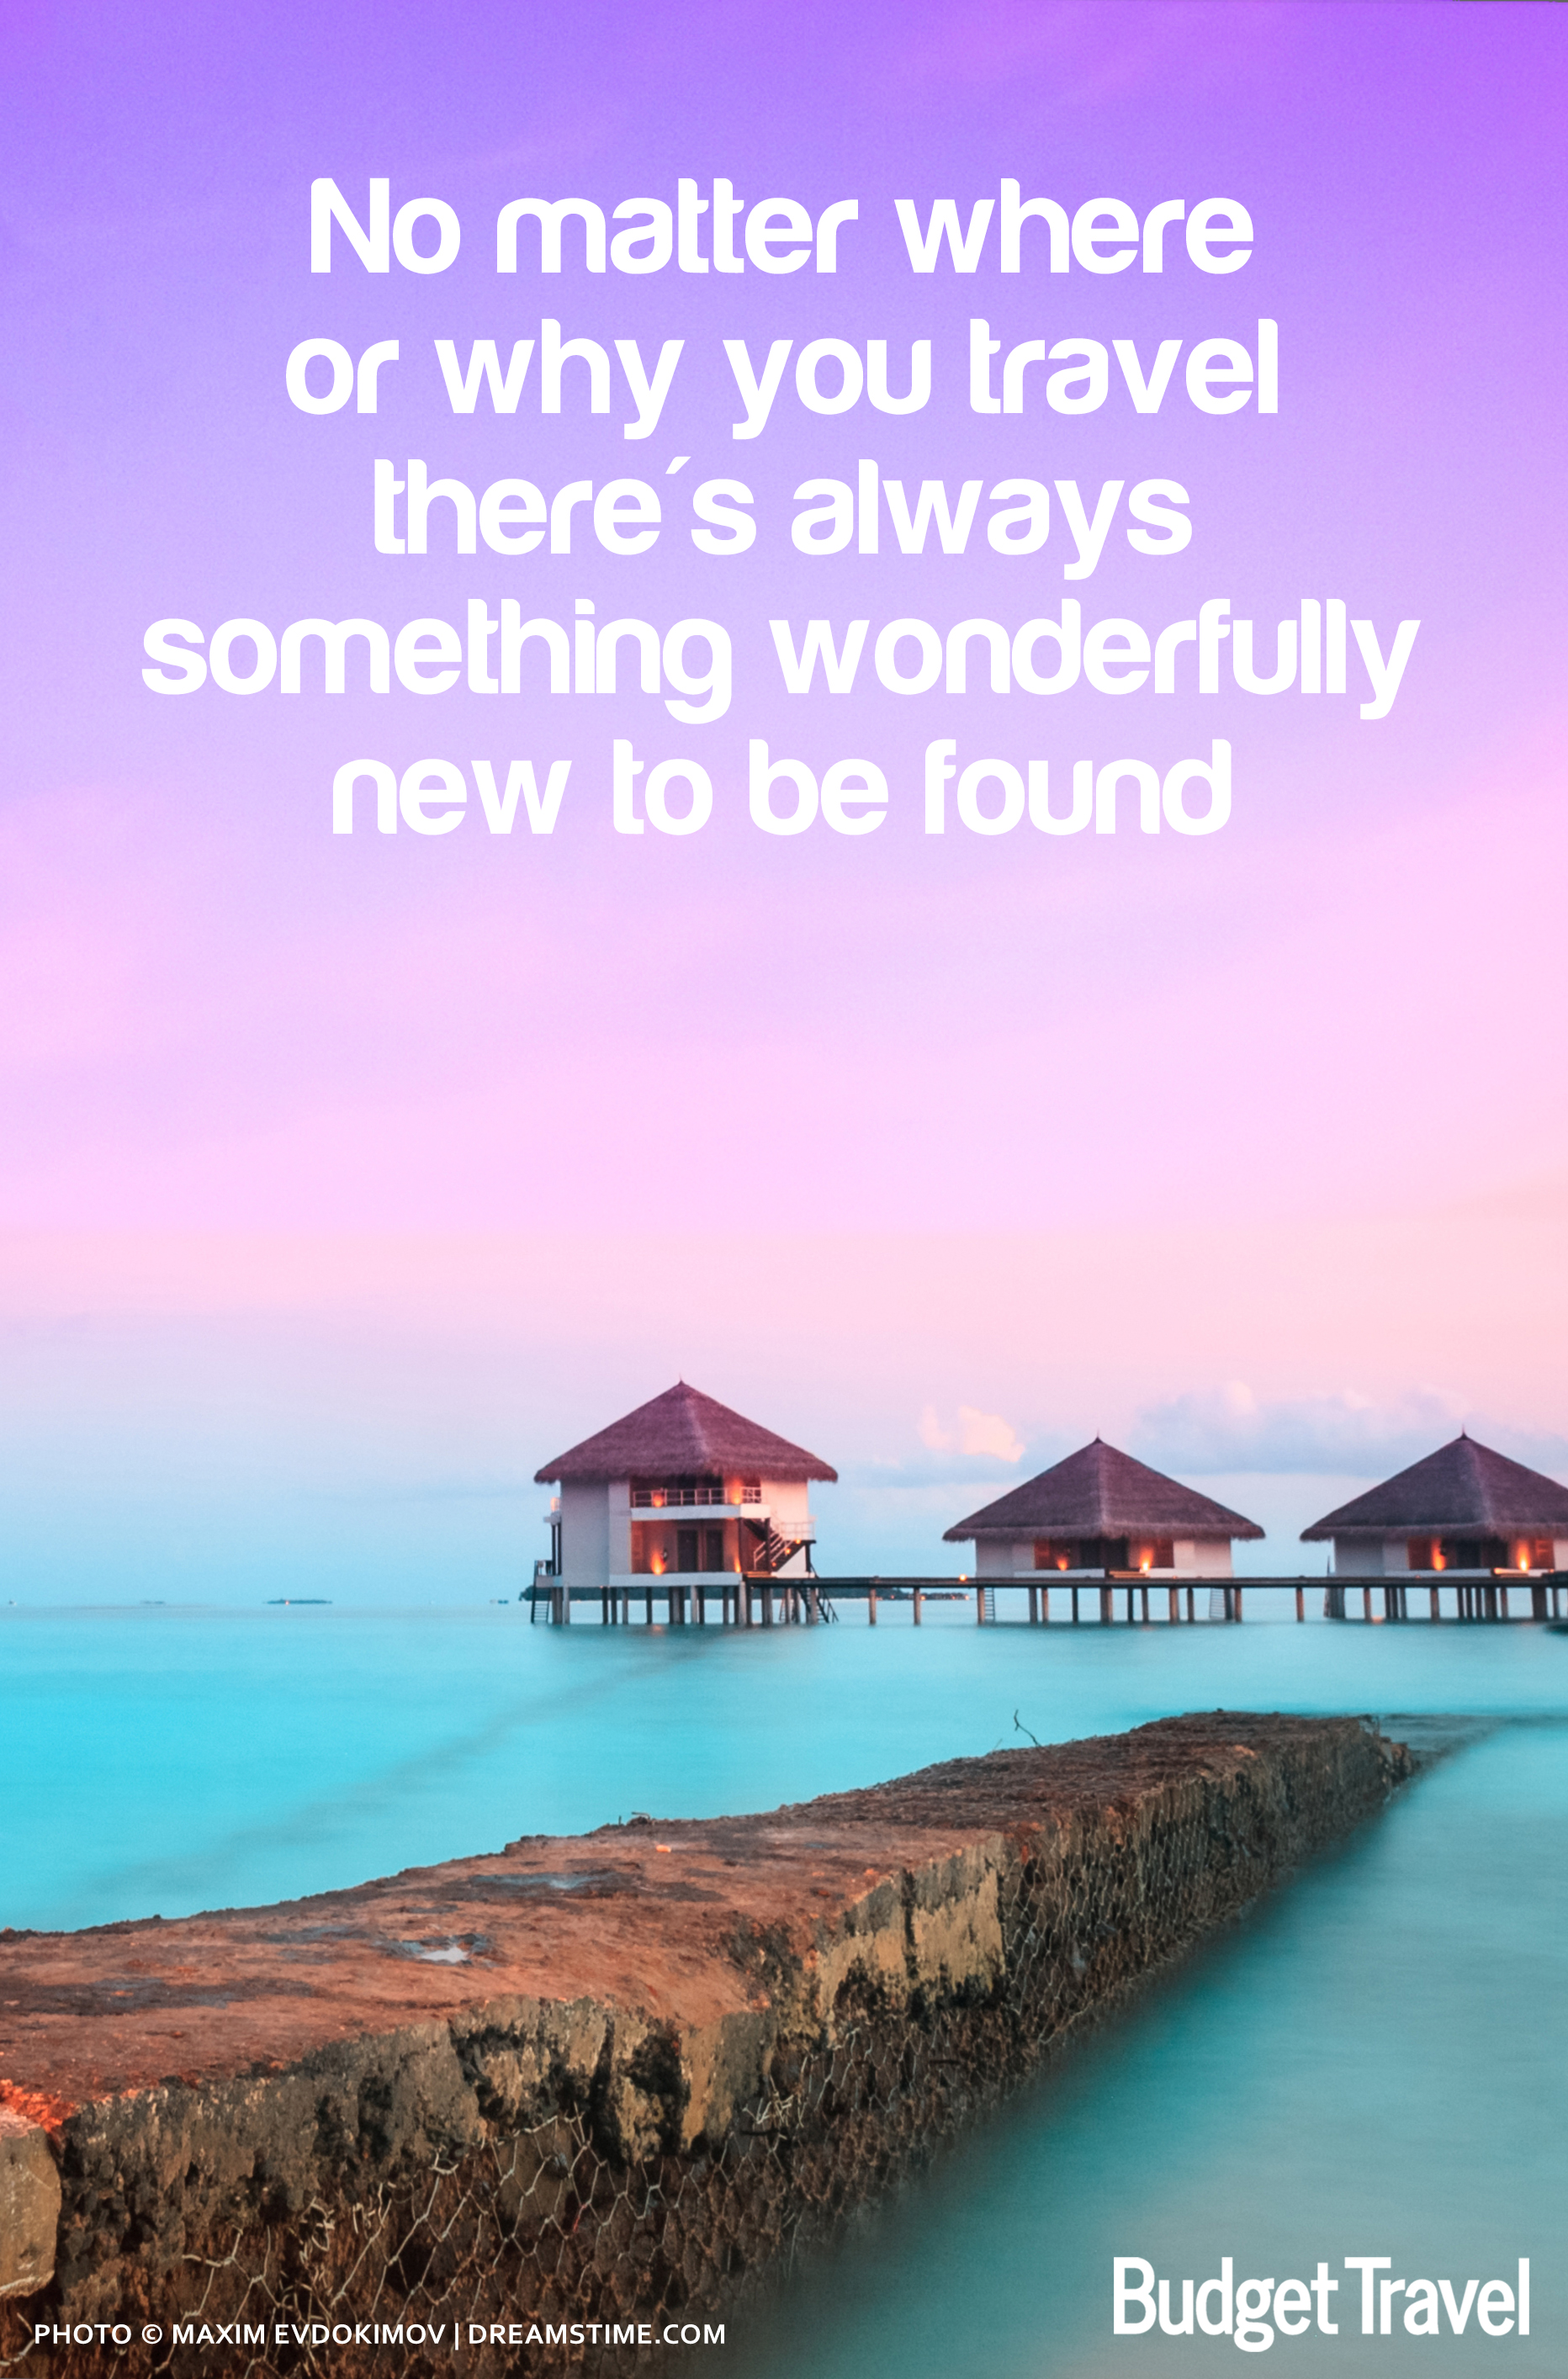 37 Of The Most Motivational Travel Quotes That Will Inspire You To